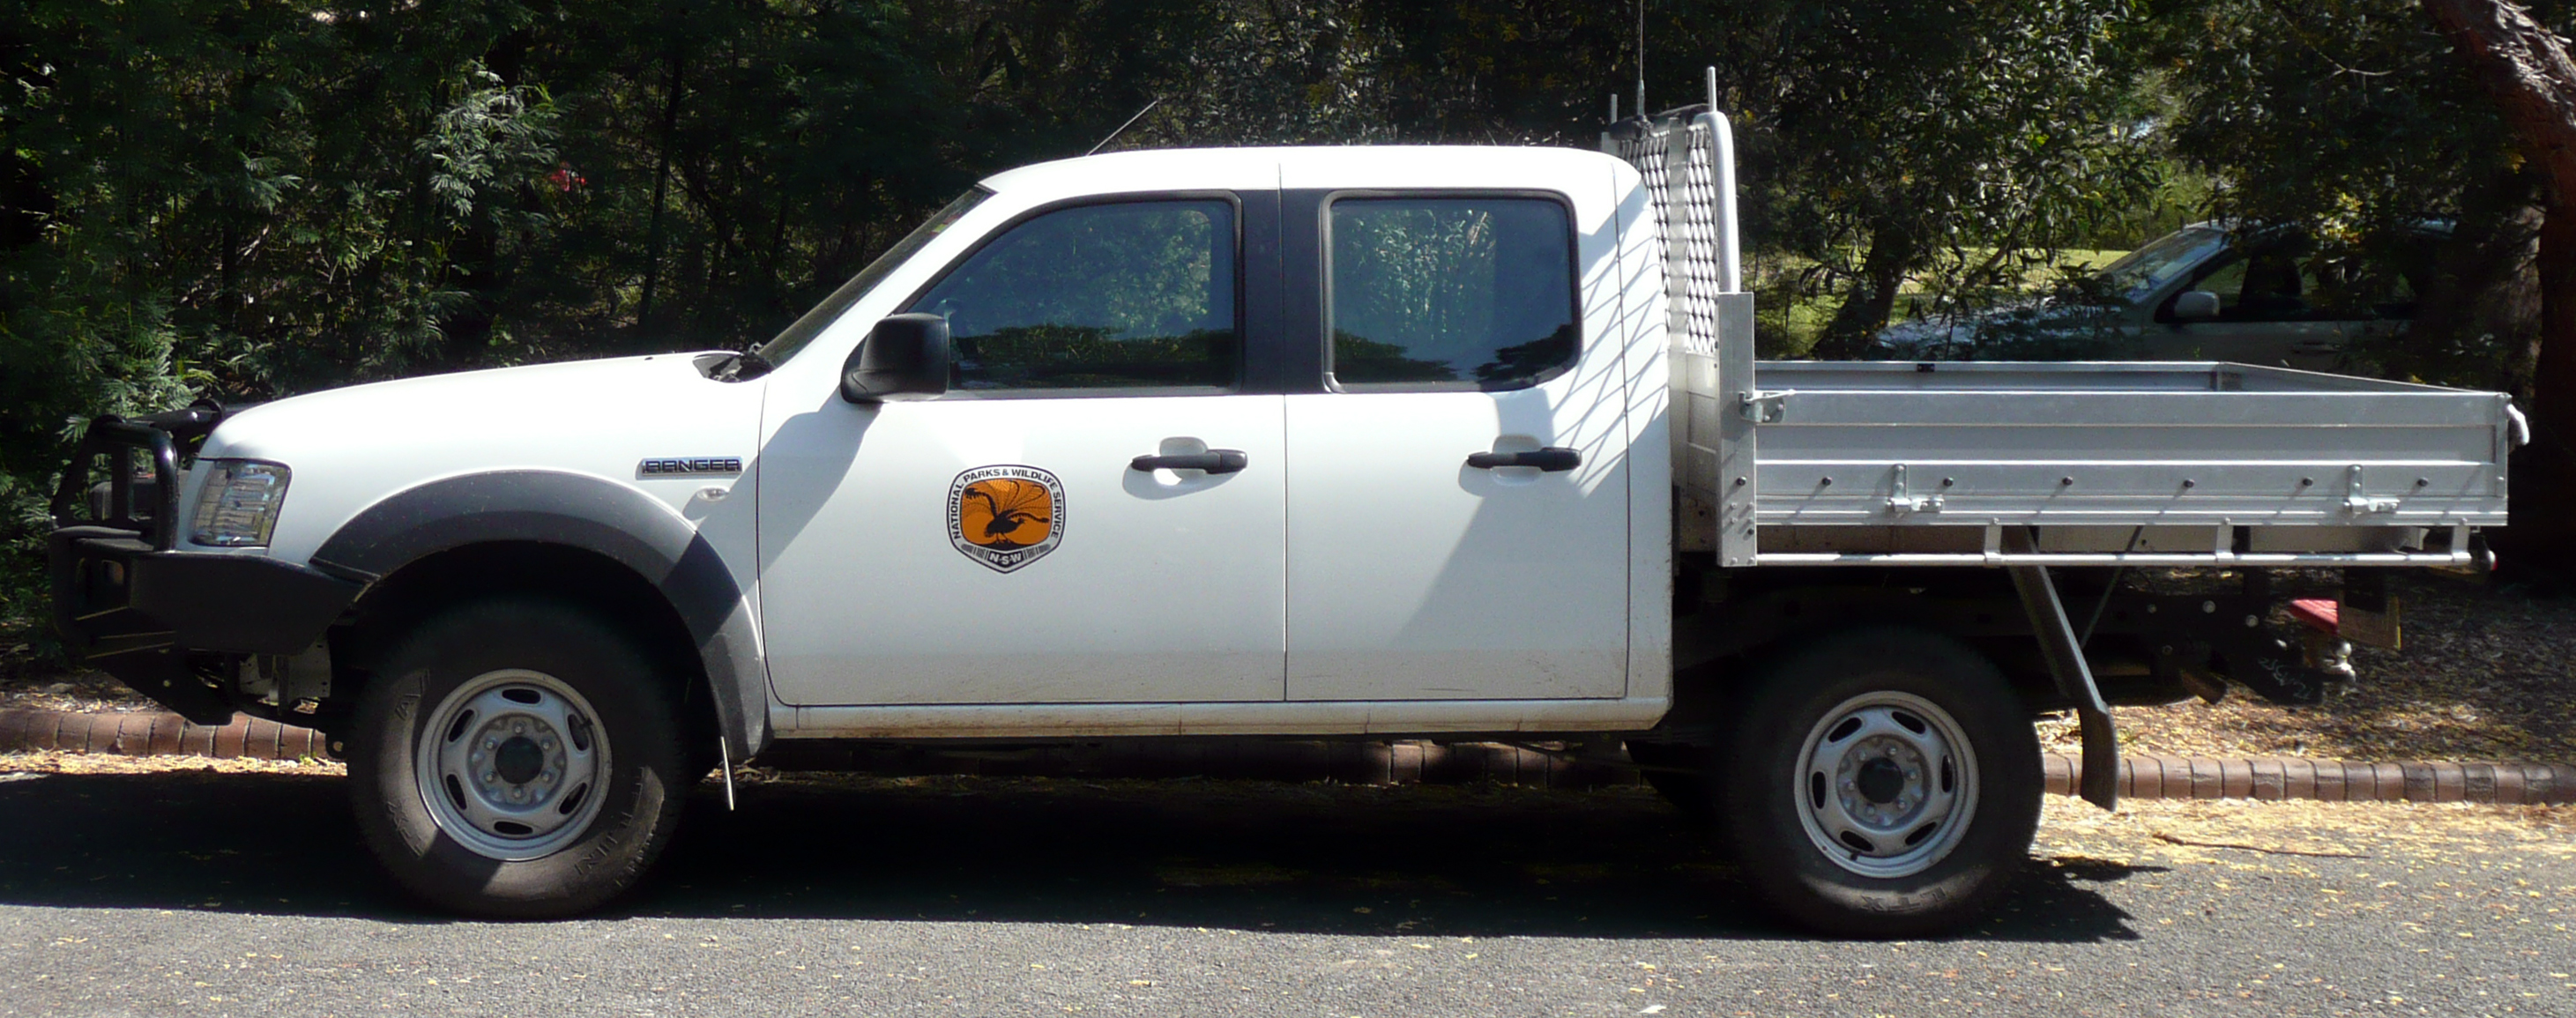 File:2006-2008 Ford Ranger (PJ) XL 4-door cab chassis 02 ...